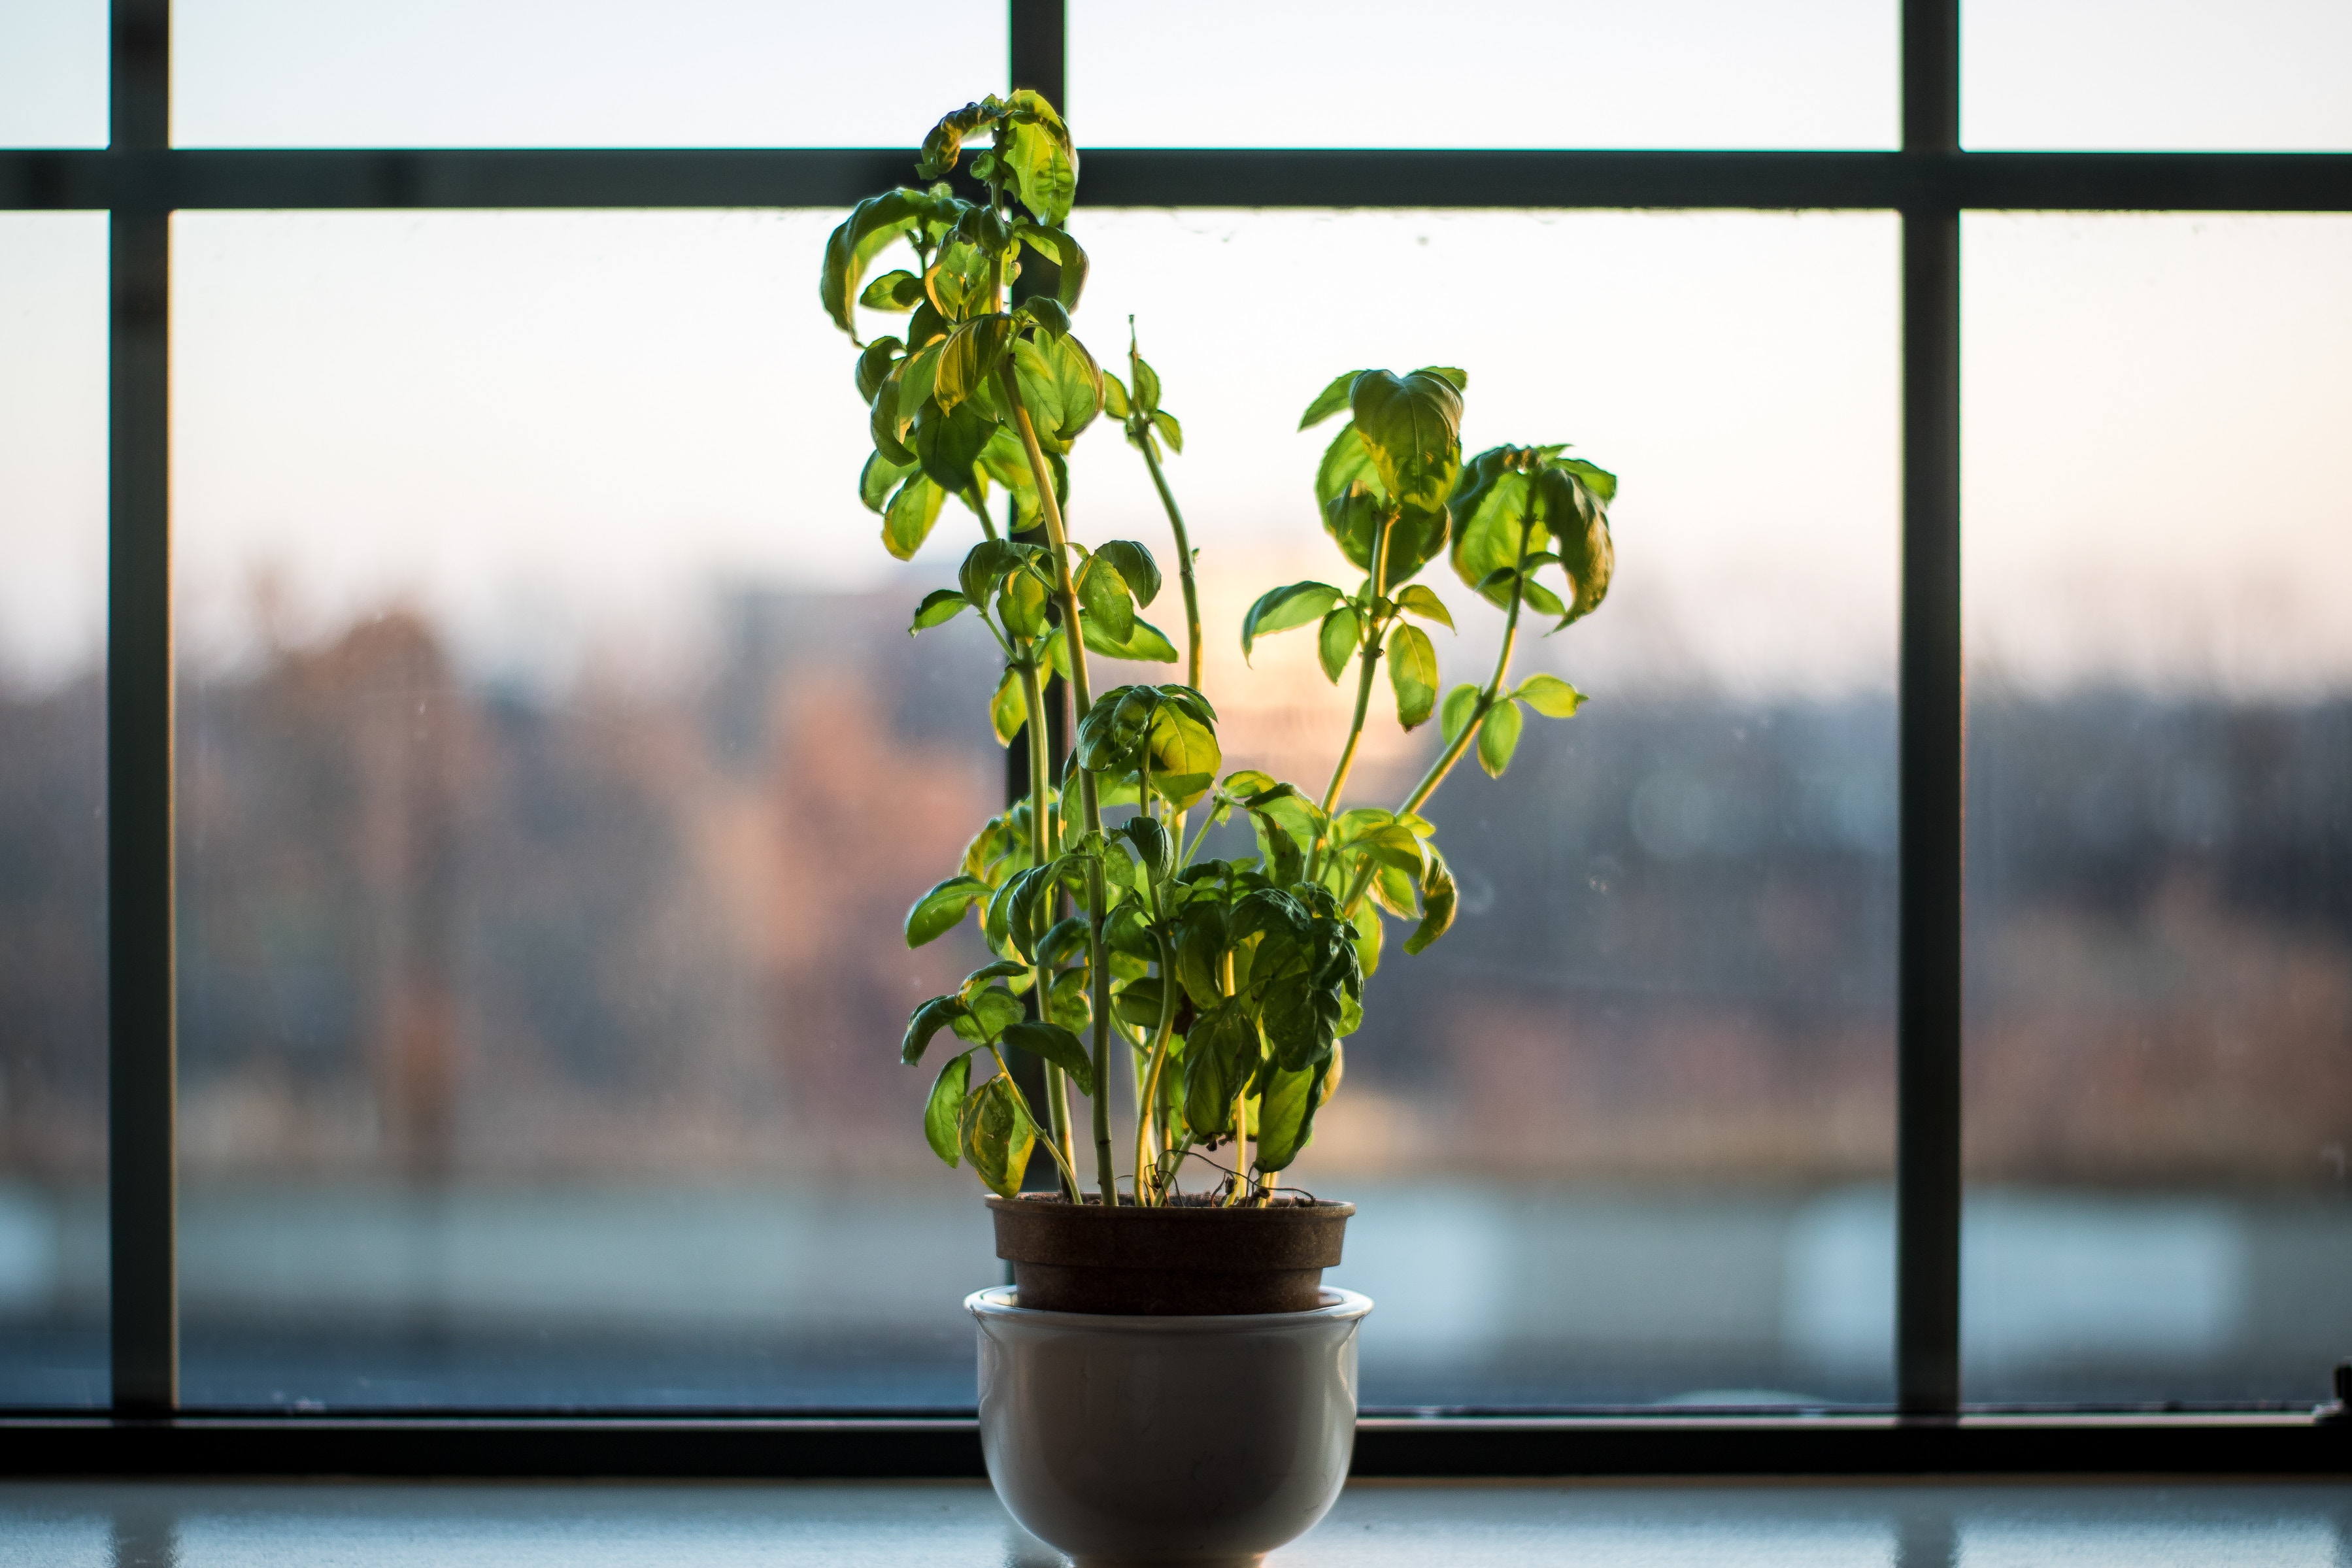 basil in grey pot with glass window city view